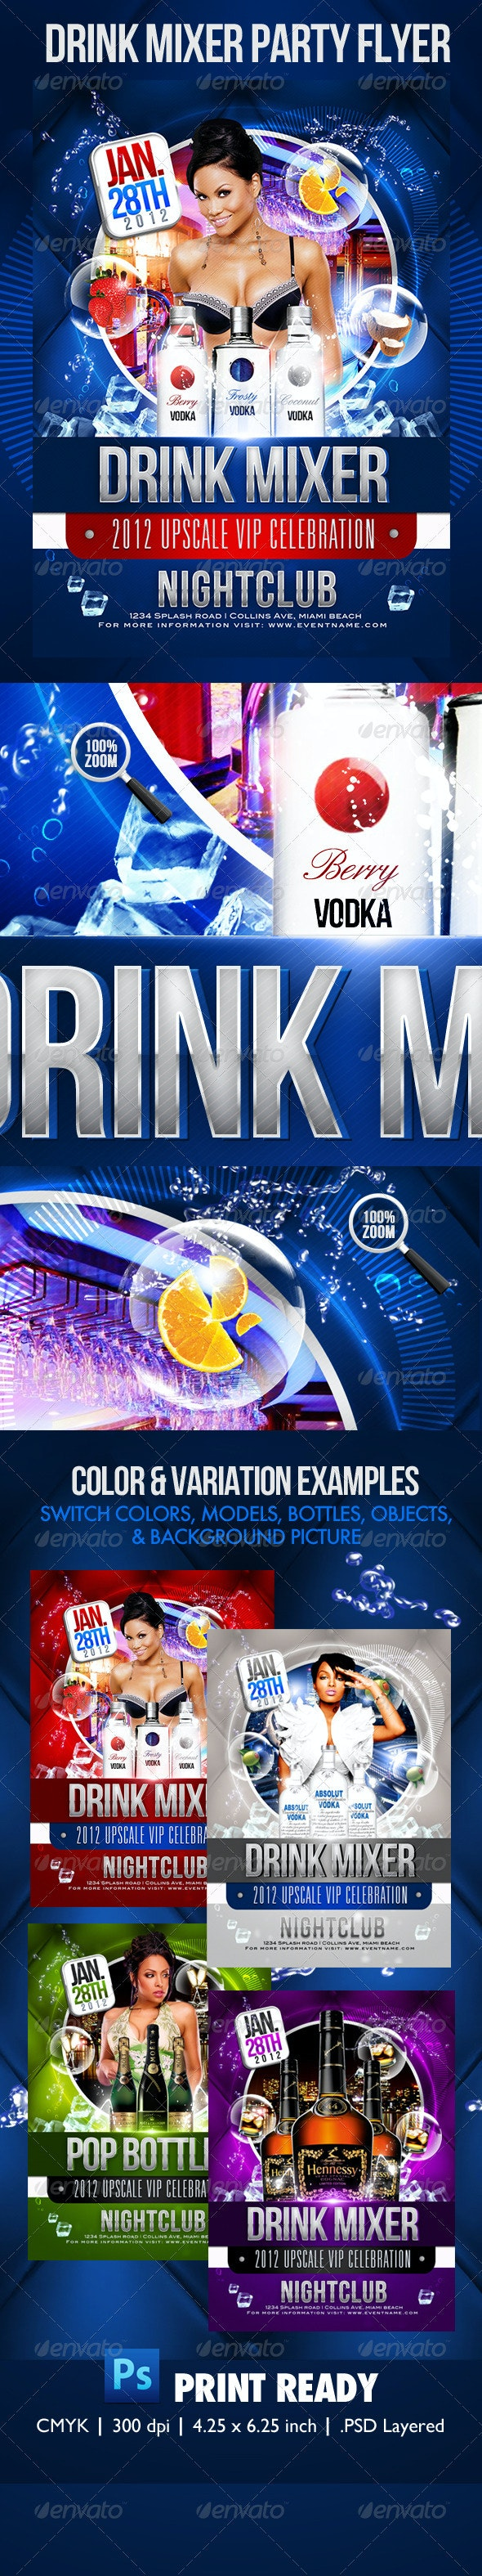 Drink Mix Party Flyer Template - Clubs & Parties Events